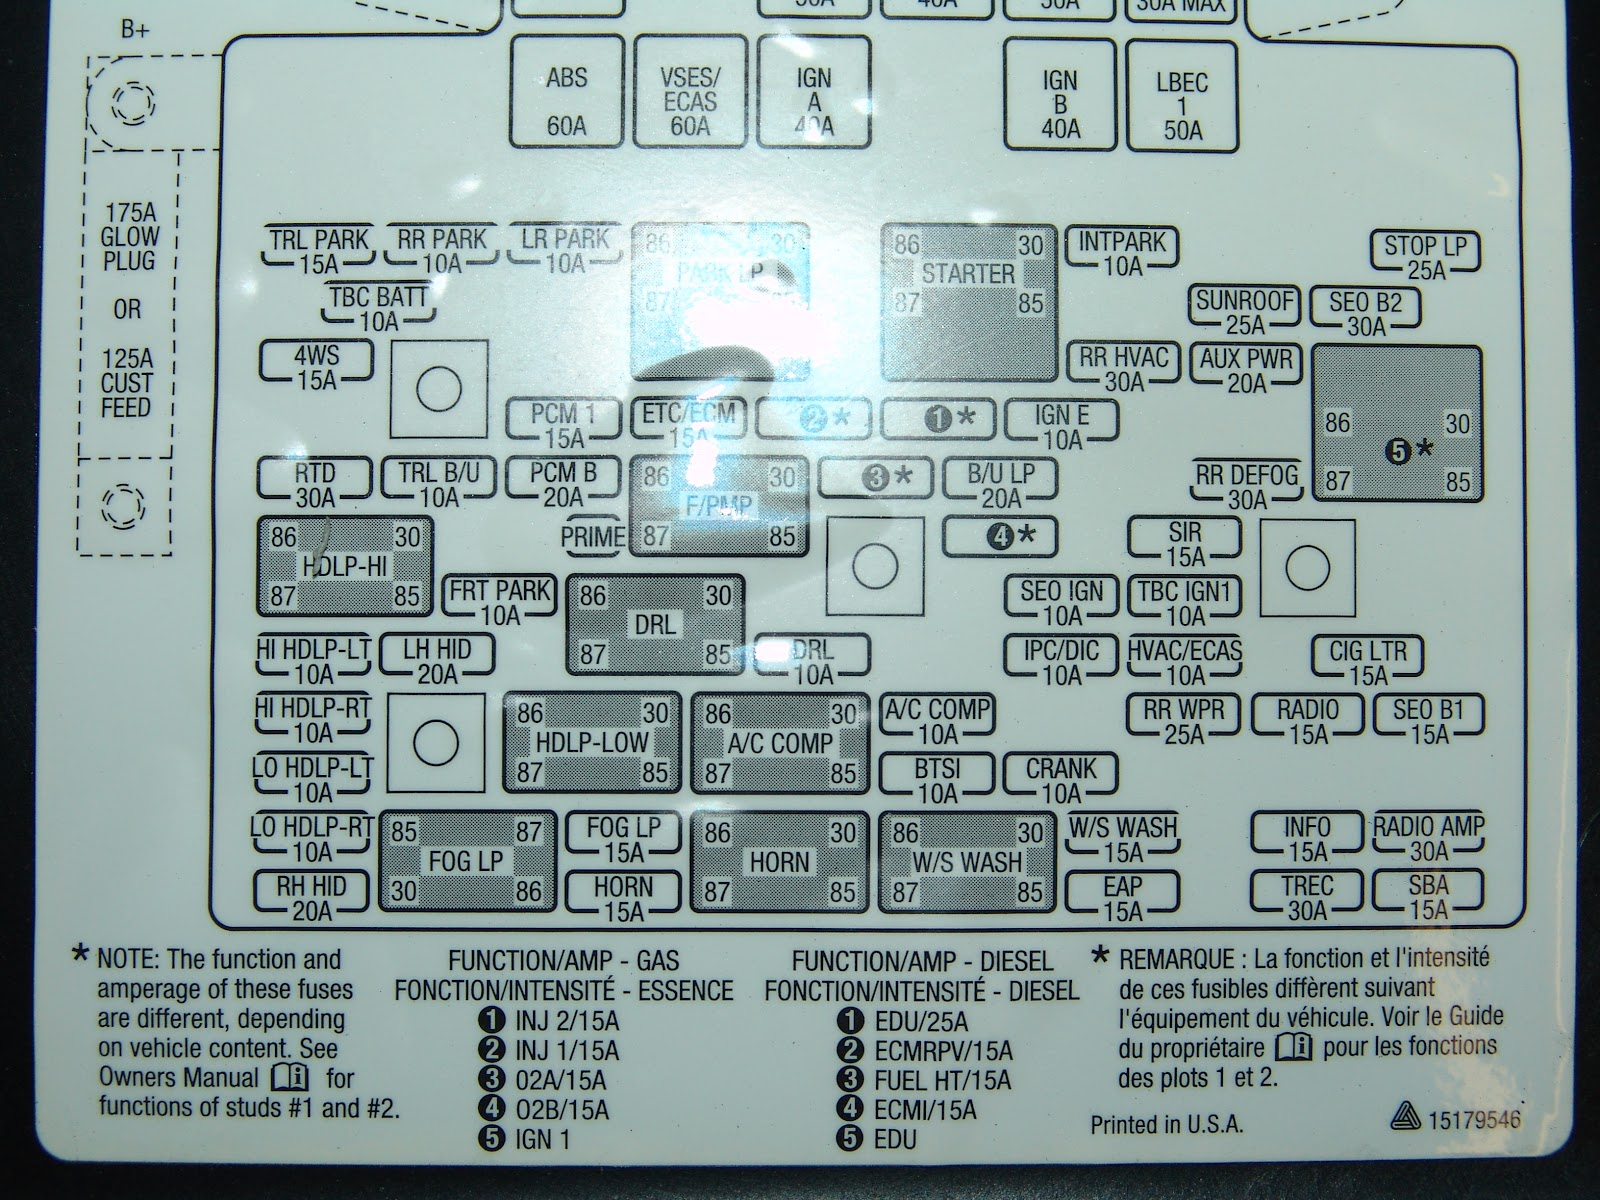 fl80 fuse box diagram wiring diagram centre freightliner cascadia fuse box diagram 2000 freightliner fuse box [ 1600 x 1200 Pixel ]